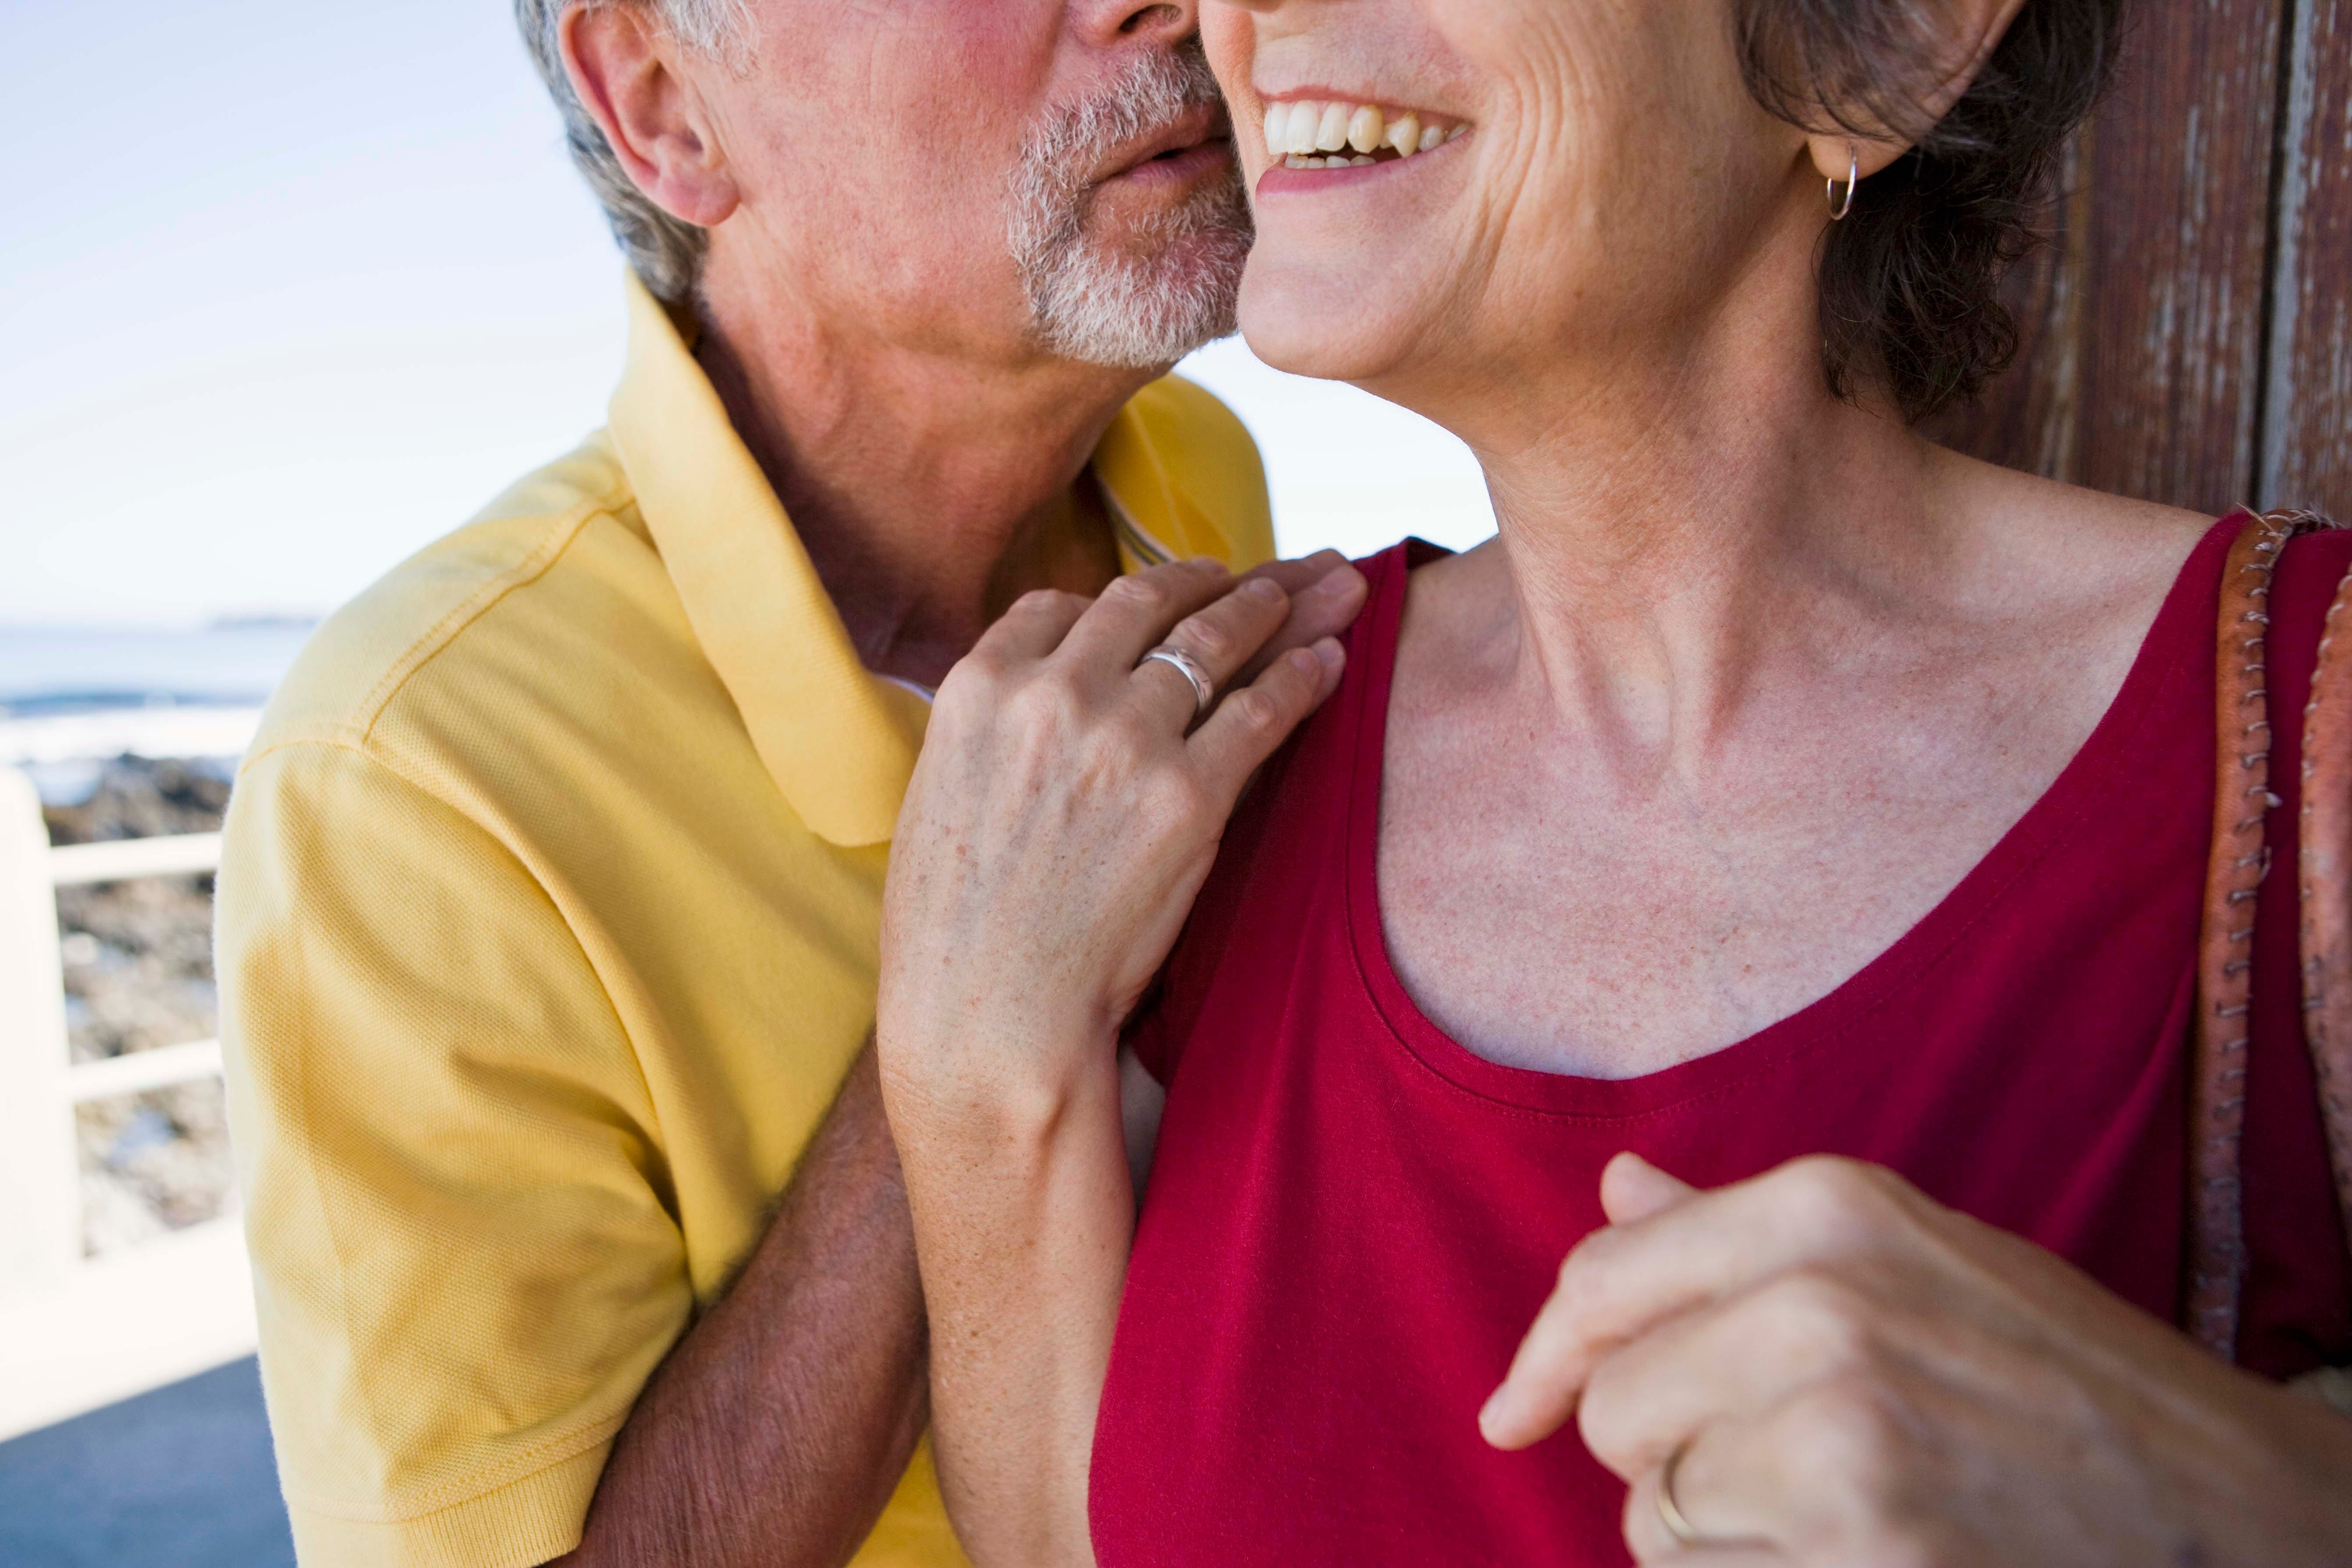 Older women actively involved in sex